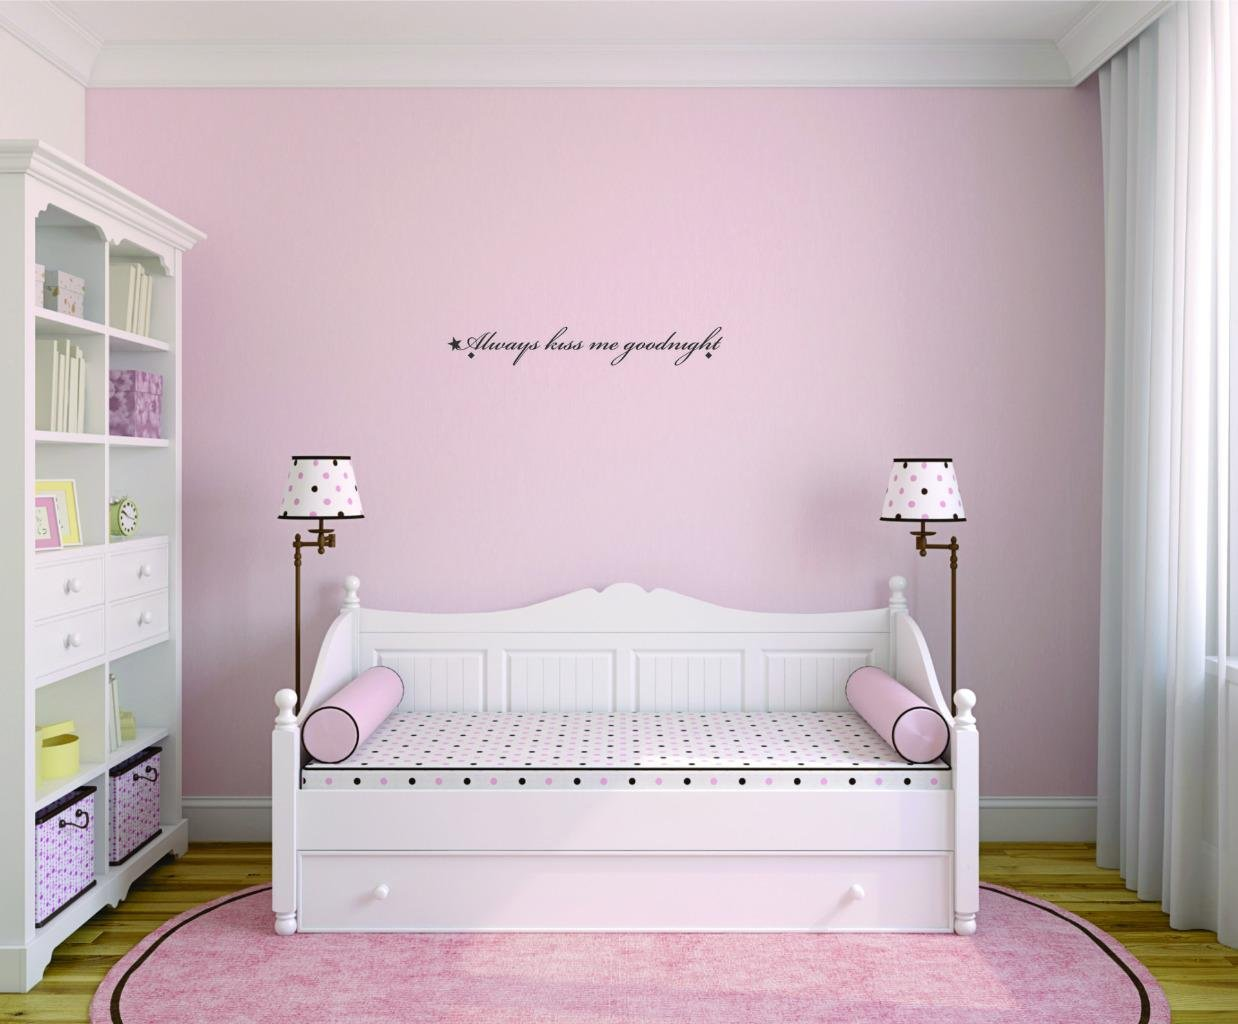 Home Decor Wall Stickers Wall Quotes Children/'s Room Fairy wishes and goodnight kisses wall sticker